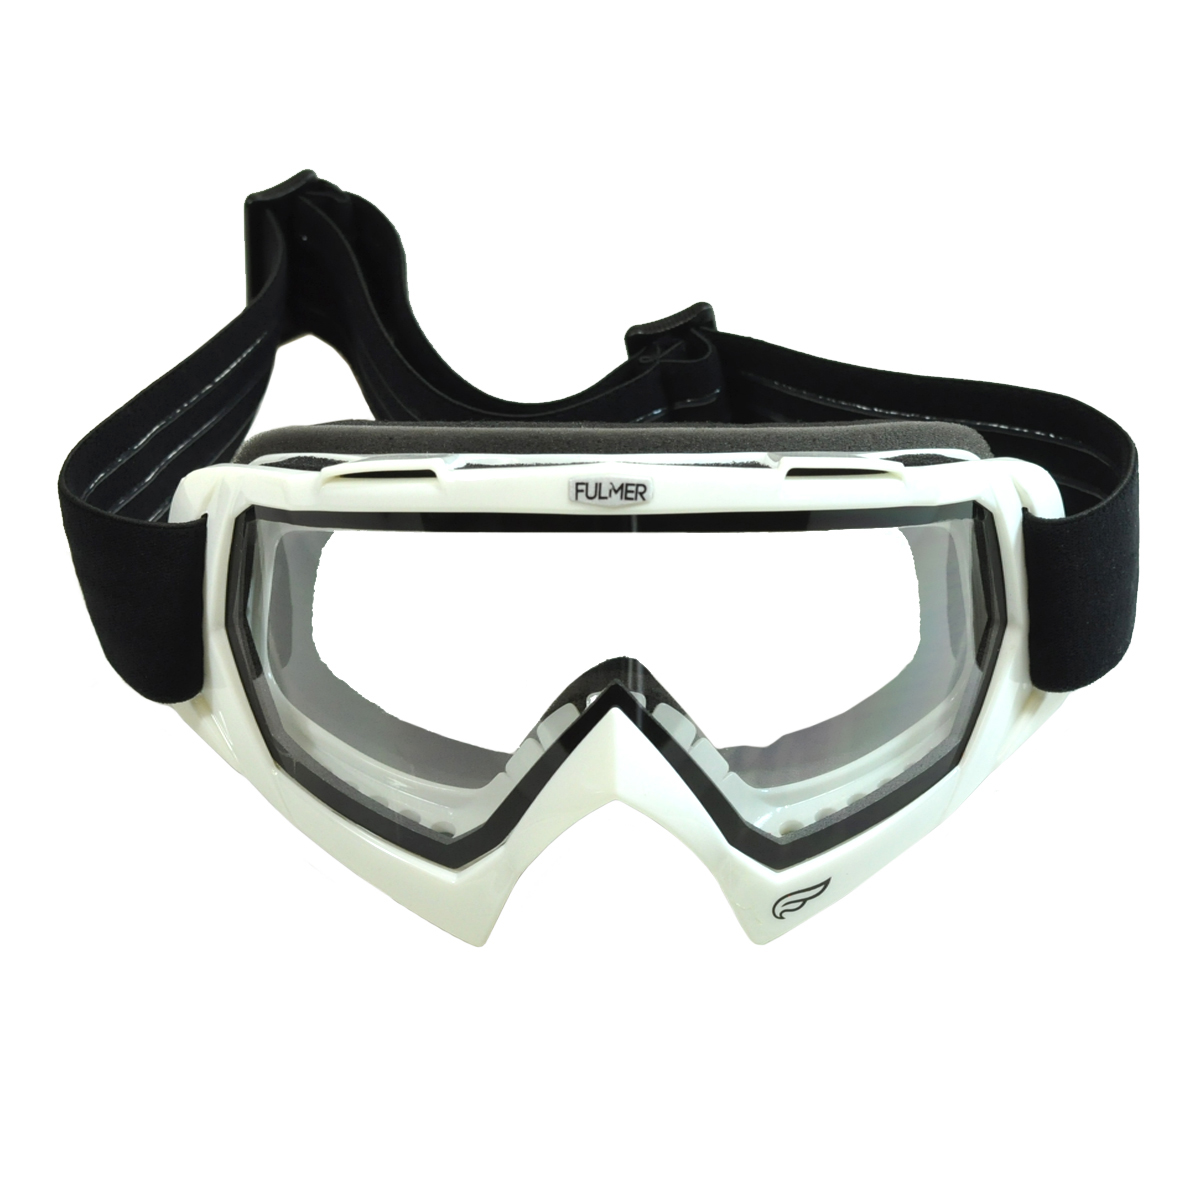 Fulmer Adult Goggles Snowmobile Ski Snow MX ATV Motocross Dirt Bike Motorcycle